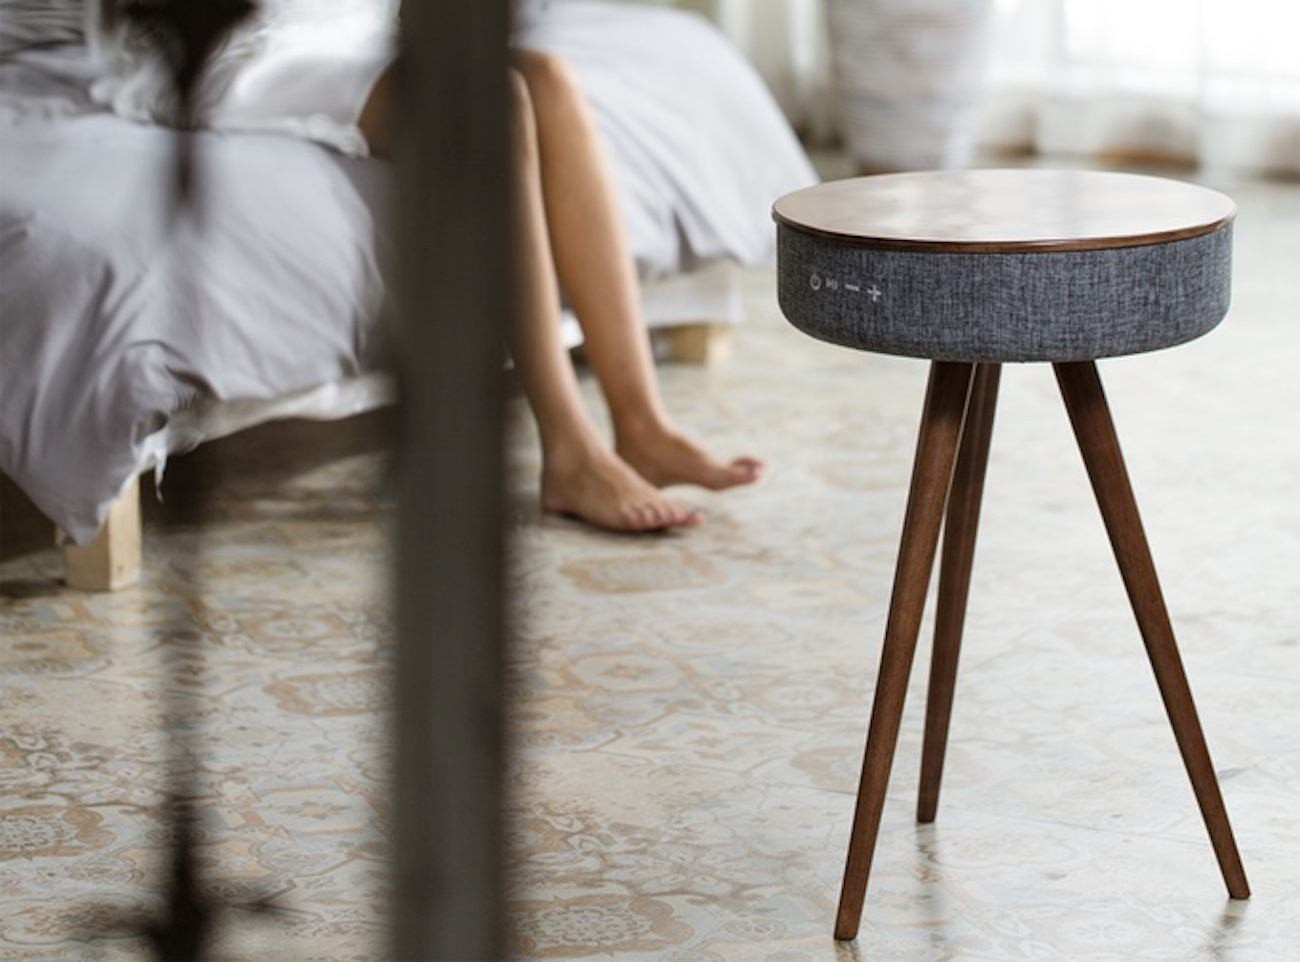 smart furniture design. Coming In A Side Table Design, This Does So Much More Than Hold Your Drink. Concealed Inside The Minimalist Exterior Is Load Of Advanced Technology. Smart Furniture Design F